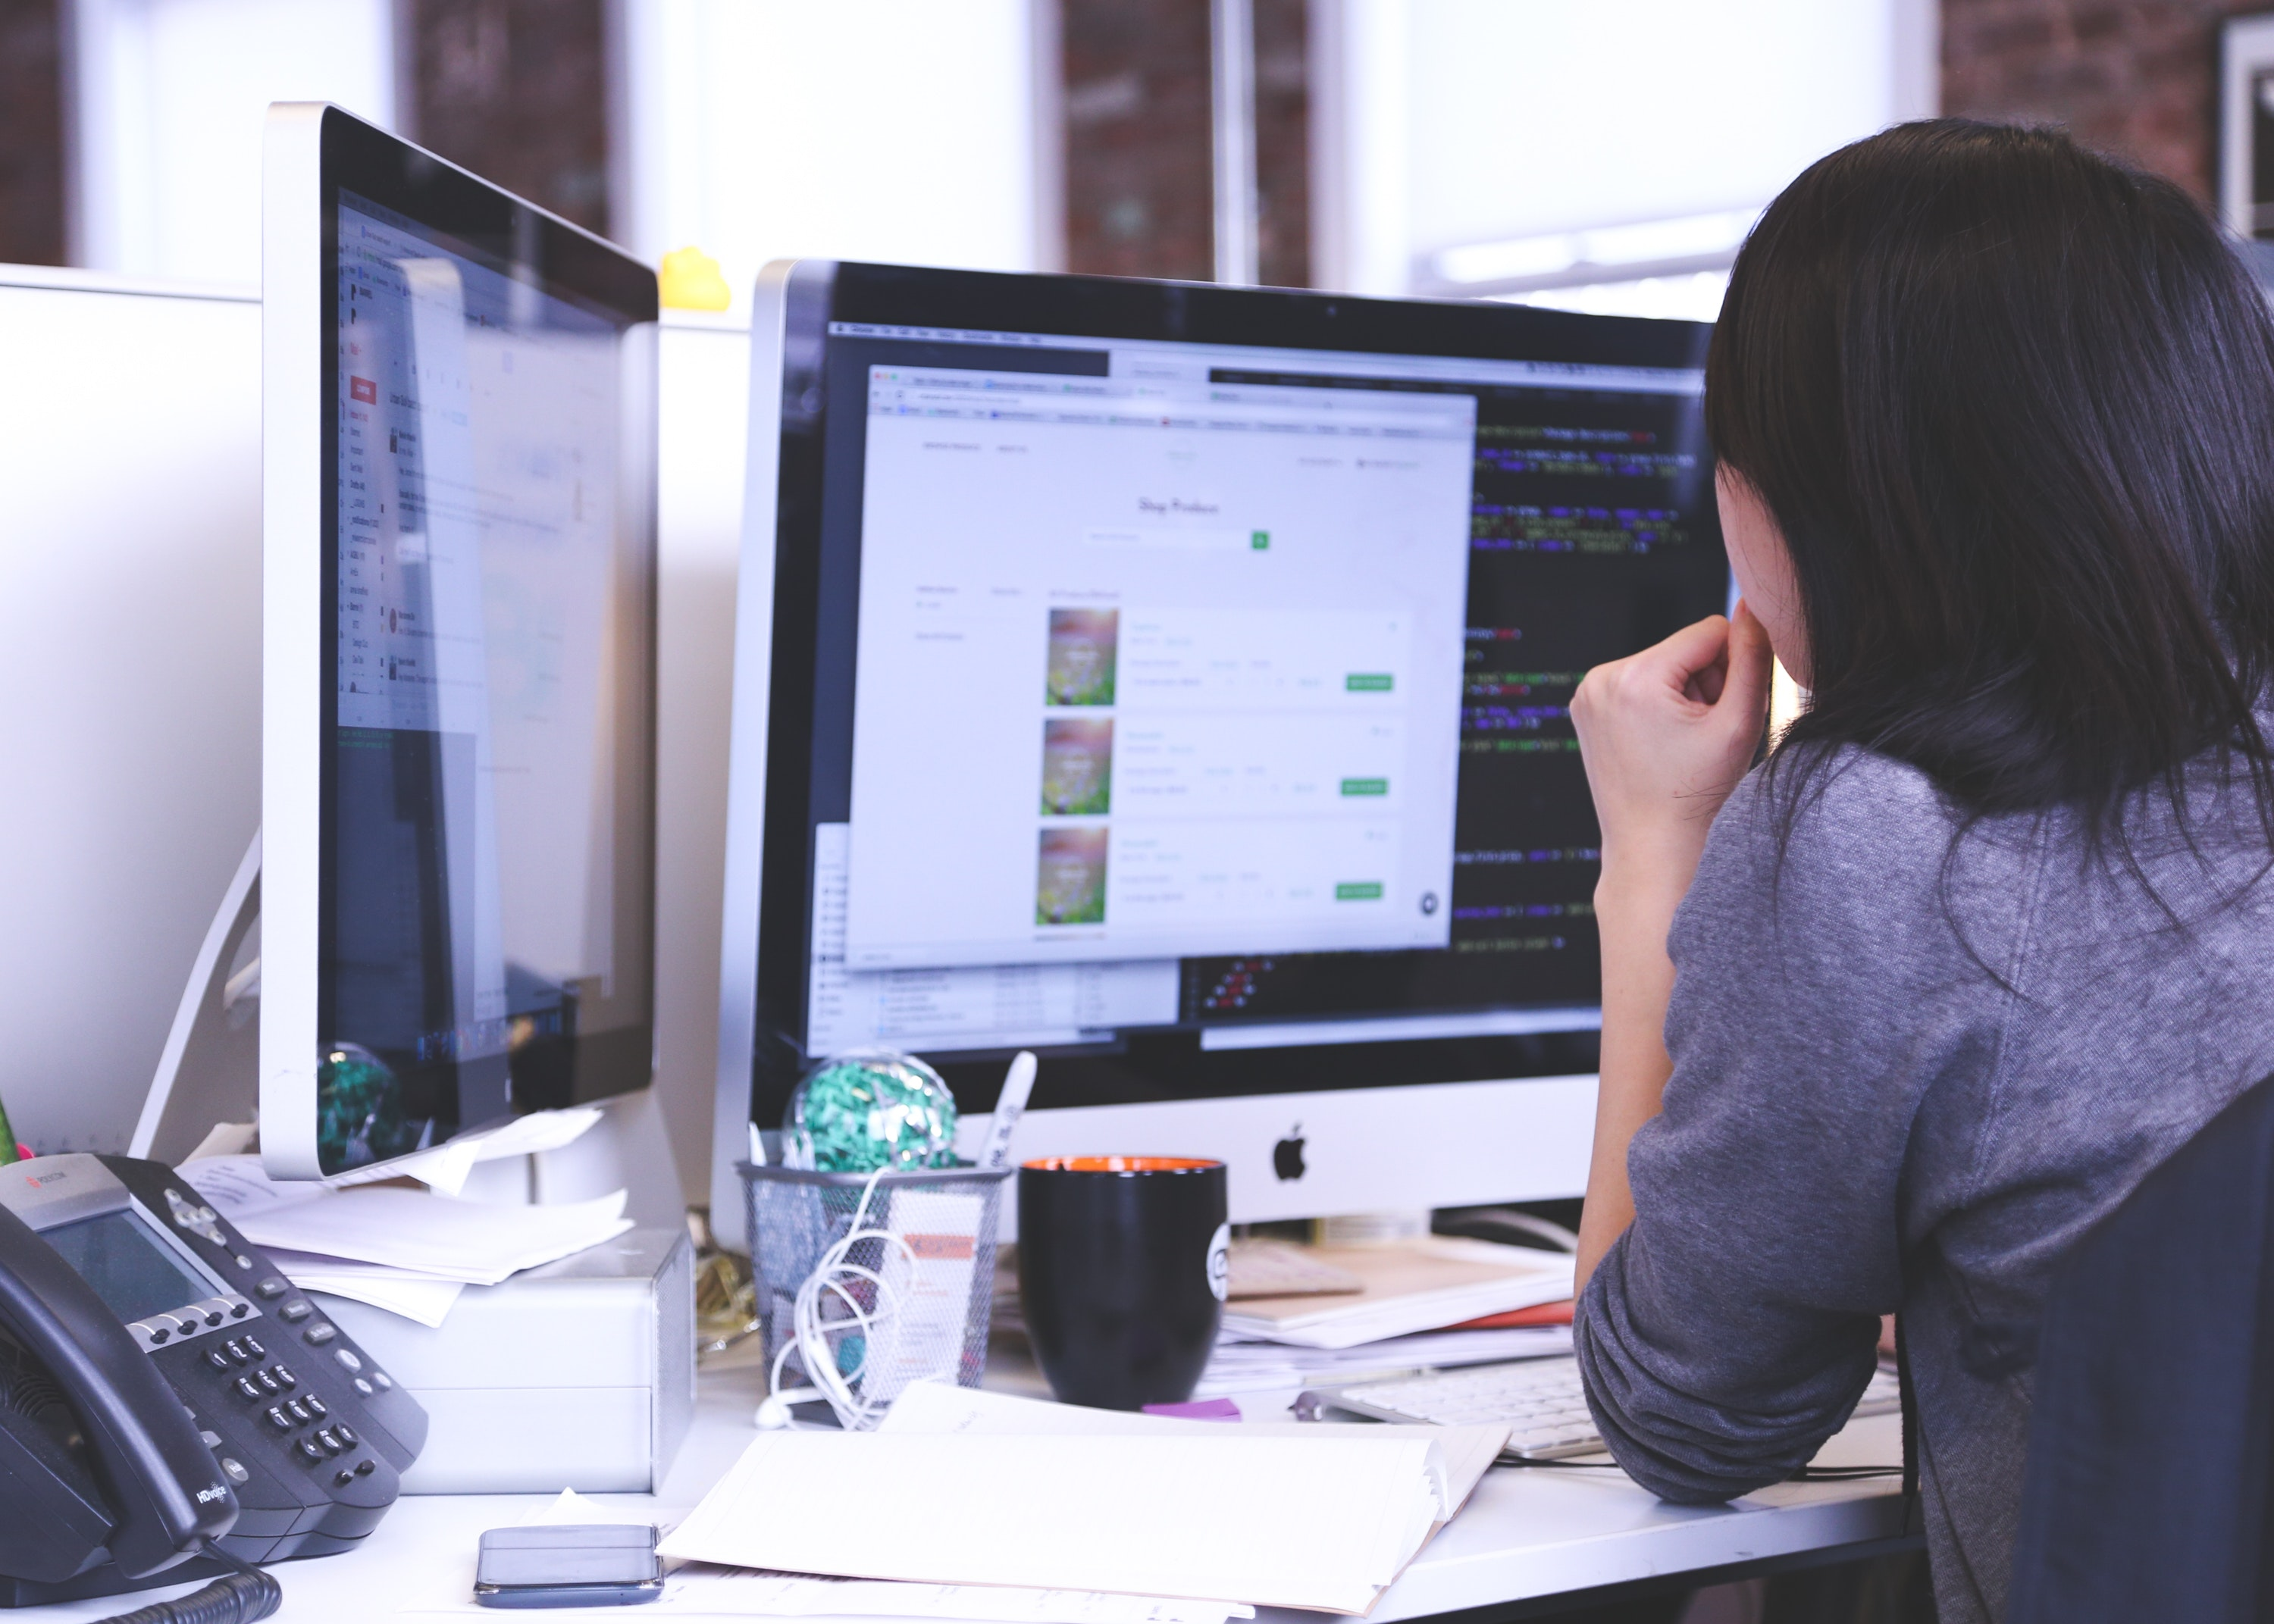 OnPath testing - a woman working at a desk with two monitors